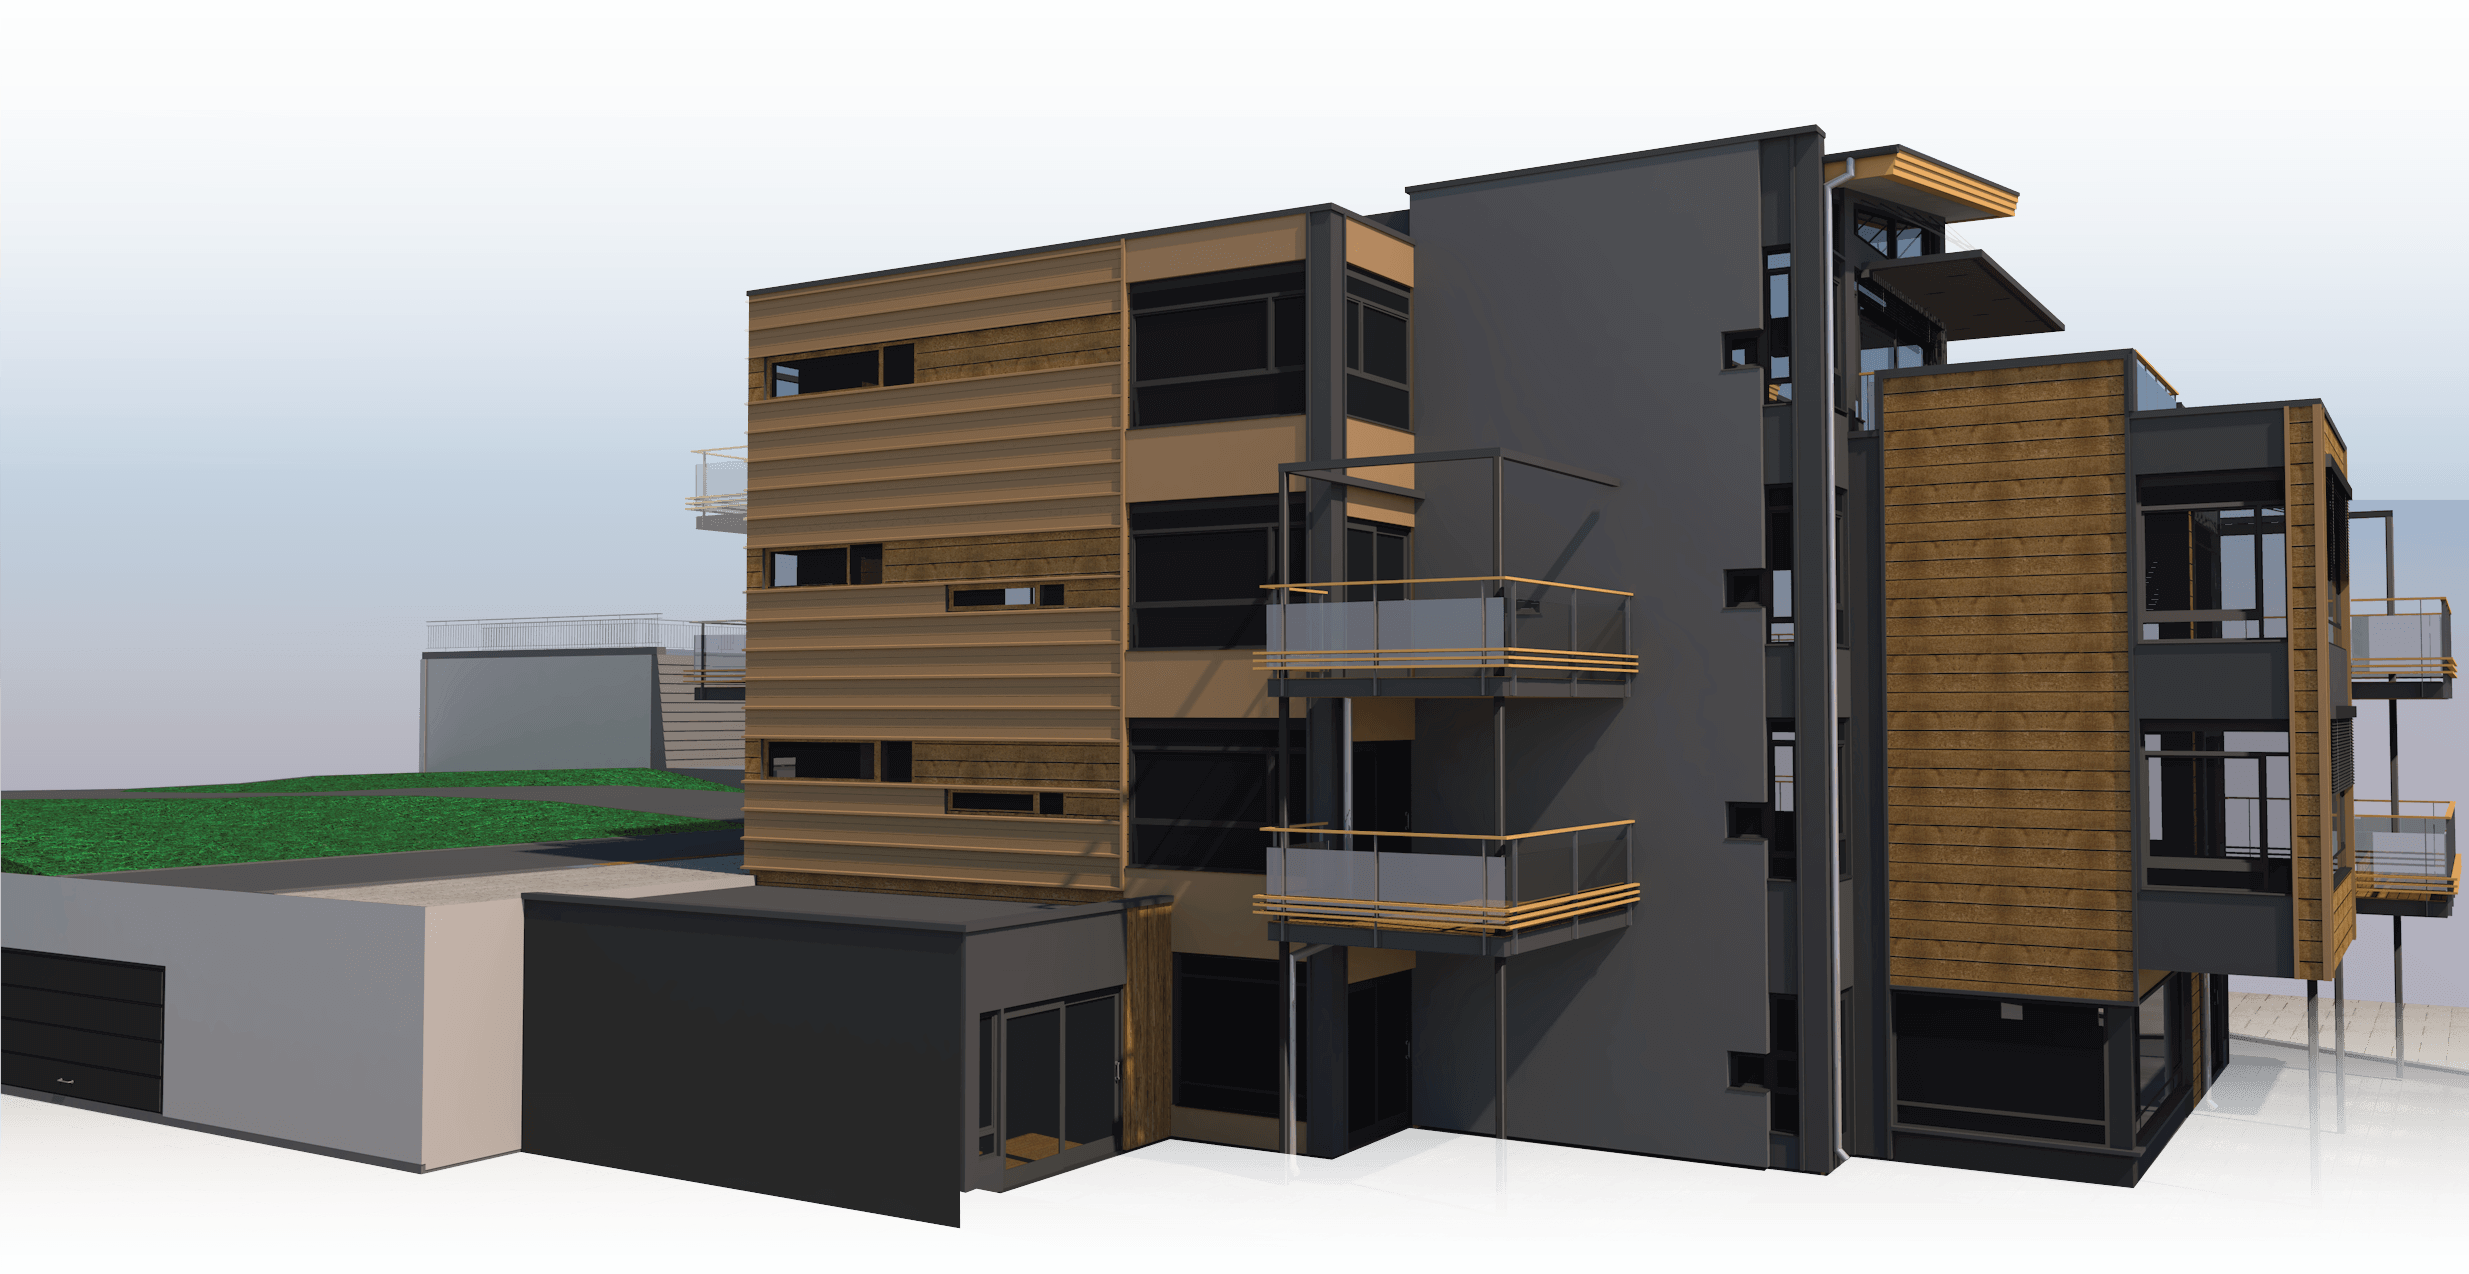 Sketchup drawing civil engineering. Top of the best